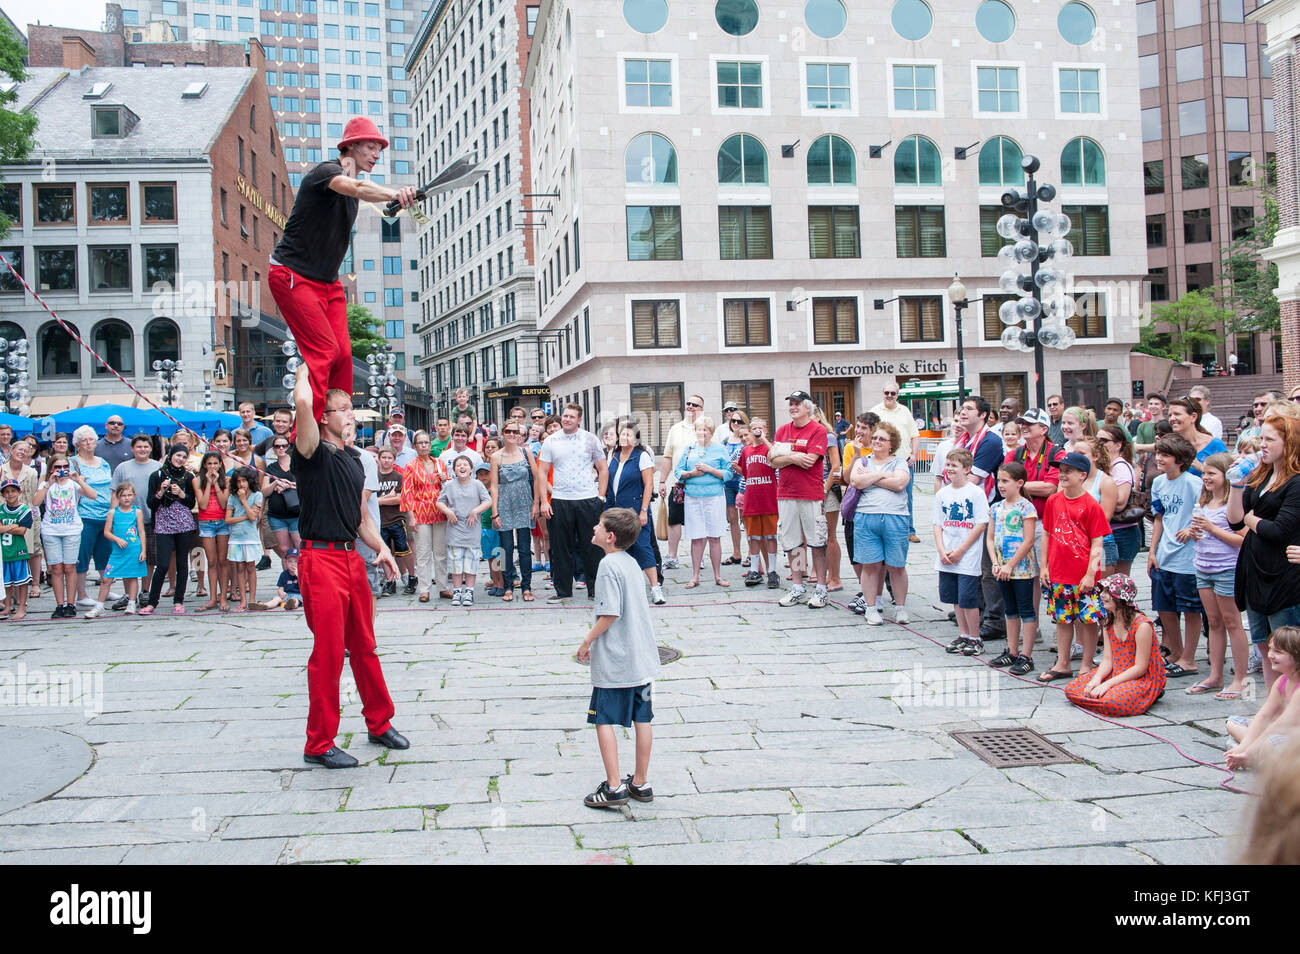 Street artists entertaining tourists outside Quincy Market in Boston, Massachusetts - Stock Image